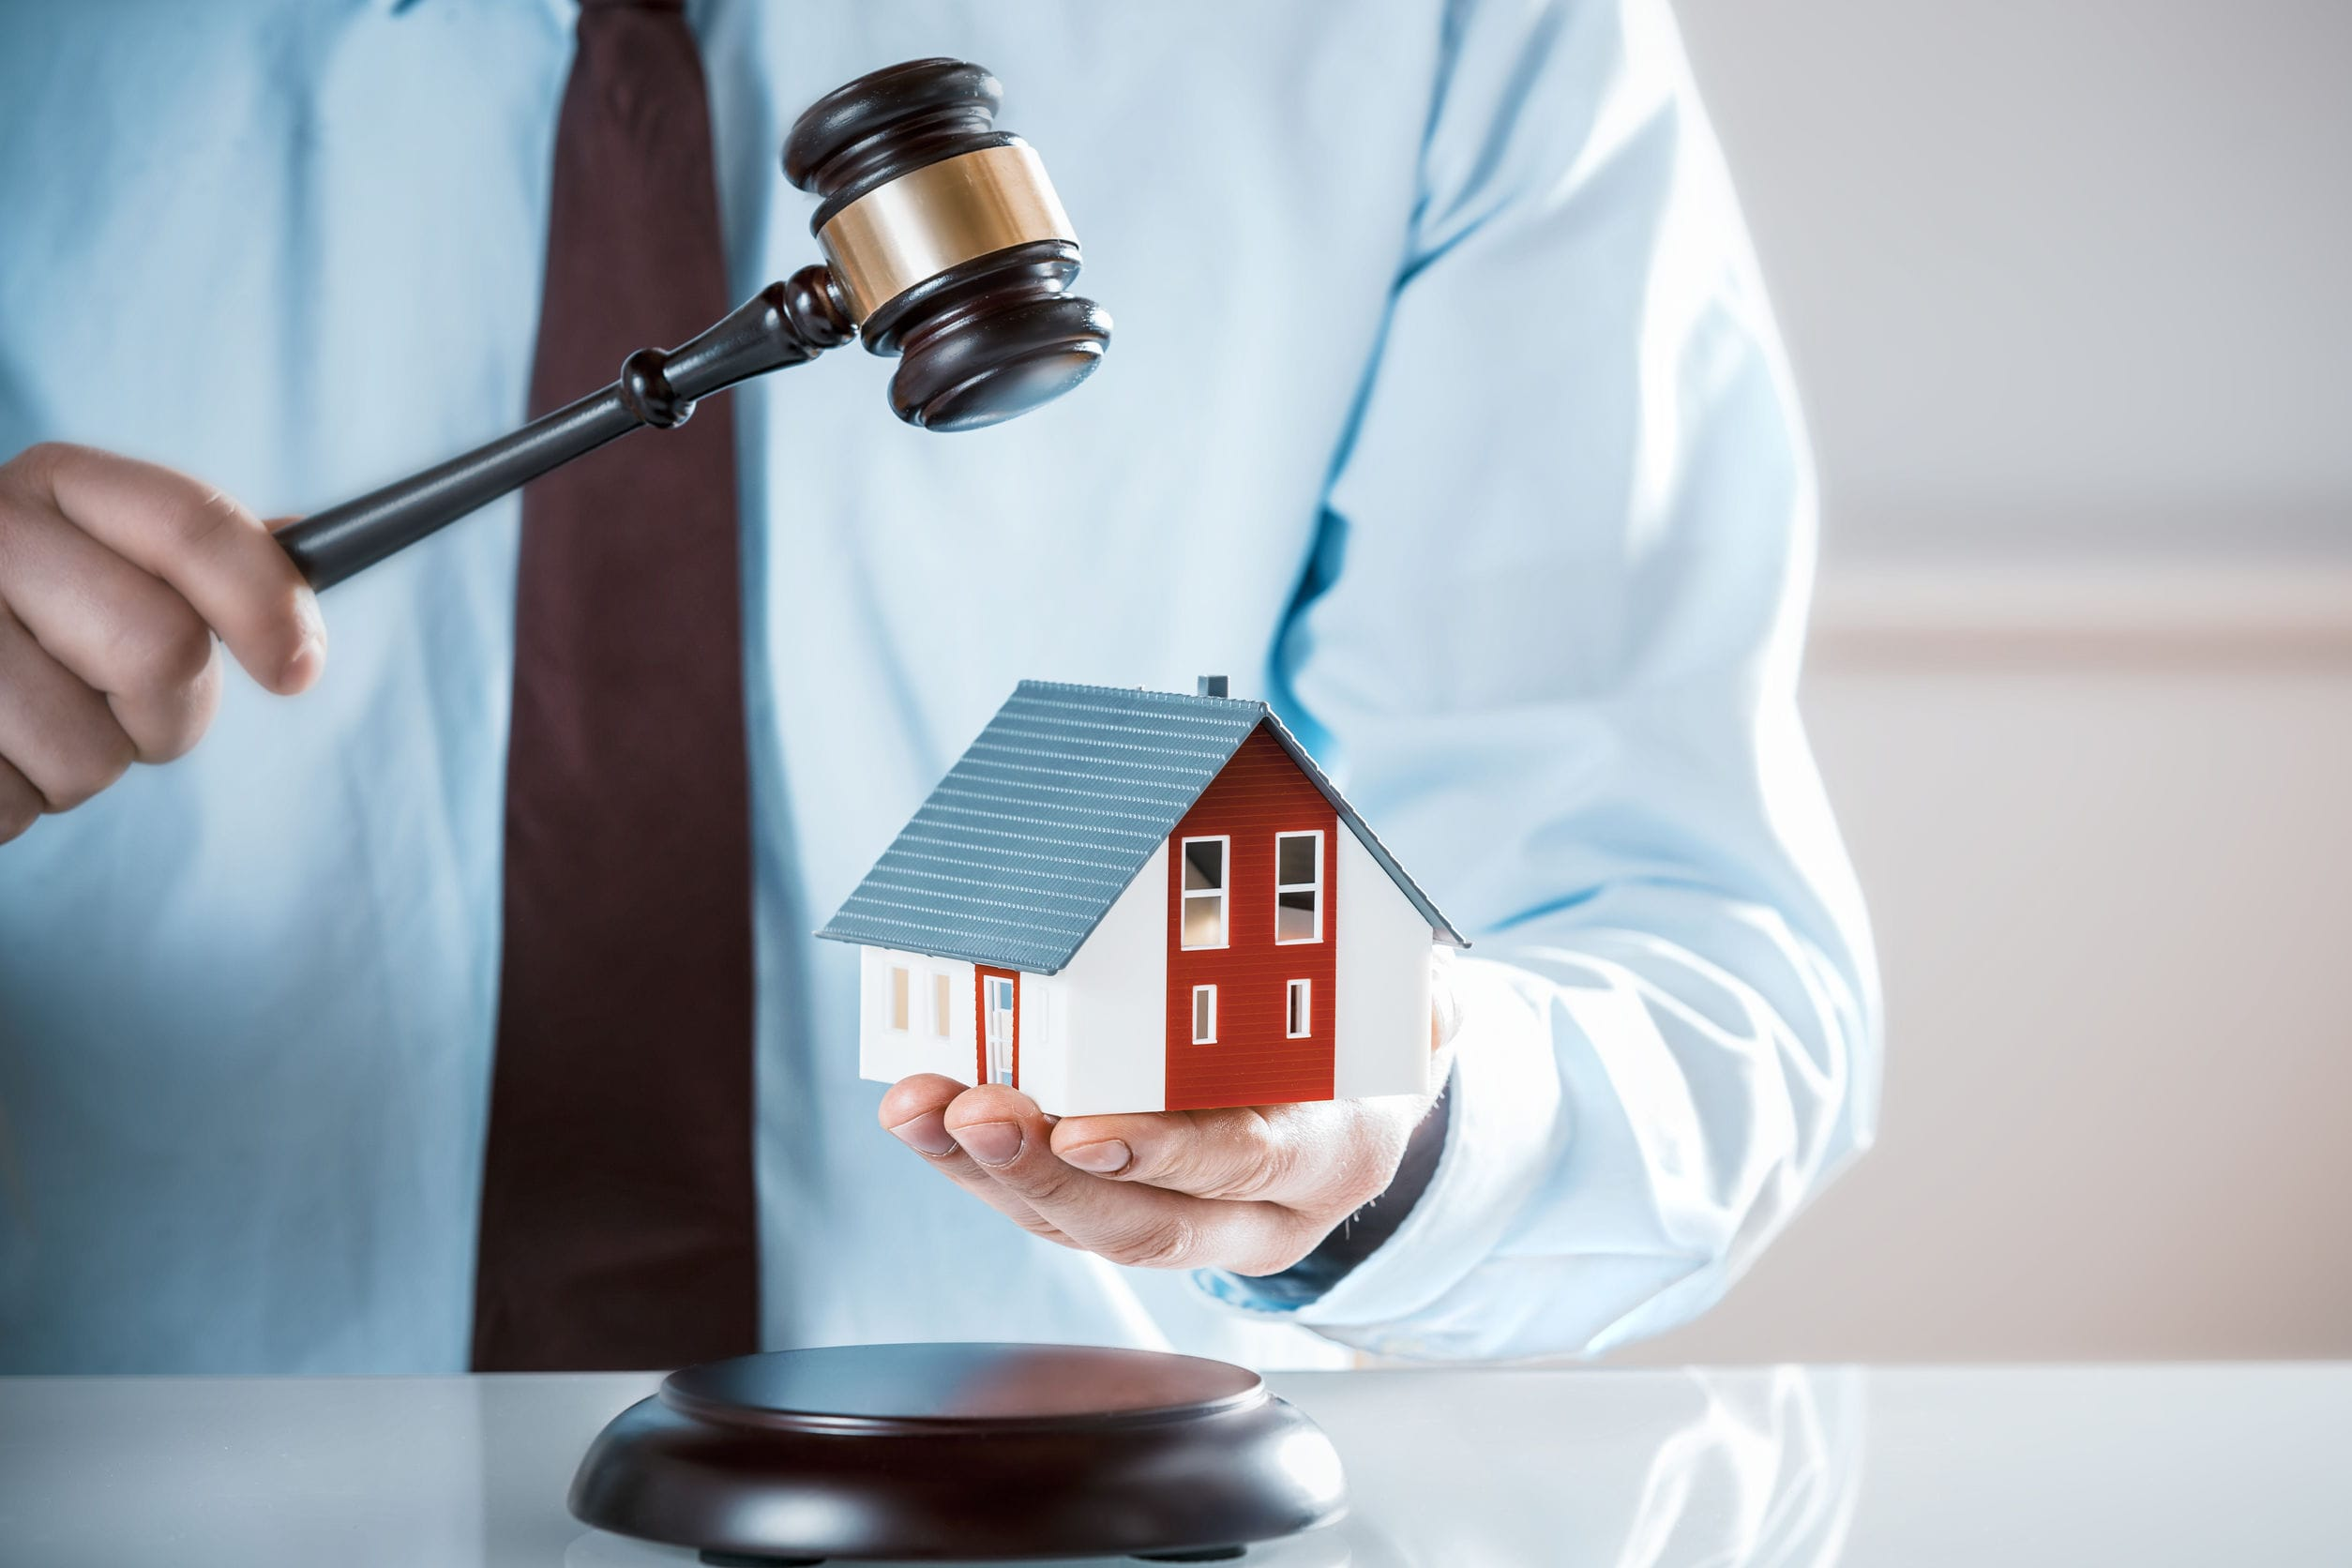 Auctioneer knocking down a property sale holding a model house as he raises his gavel, or a lawyer or judge mediating in a property dispute in court